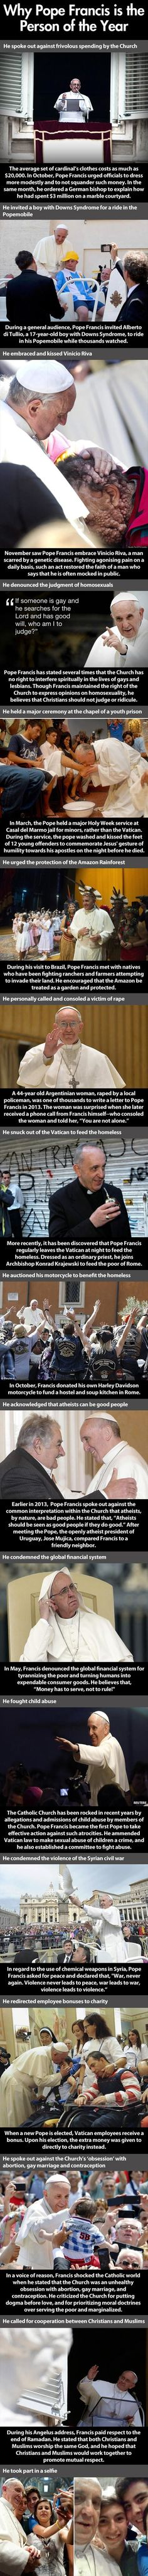 this is why I love the pope like I'm not part of the religion or agree with it but I have so much respect for the pope